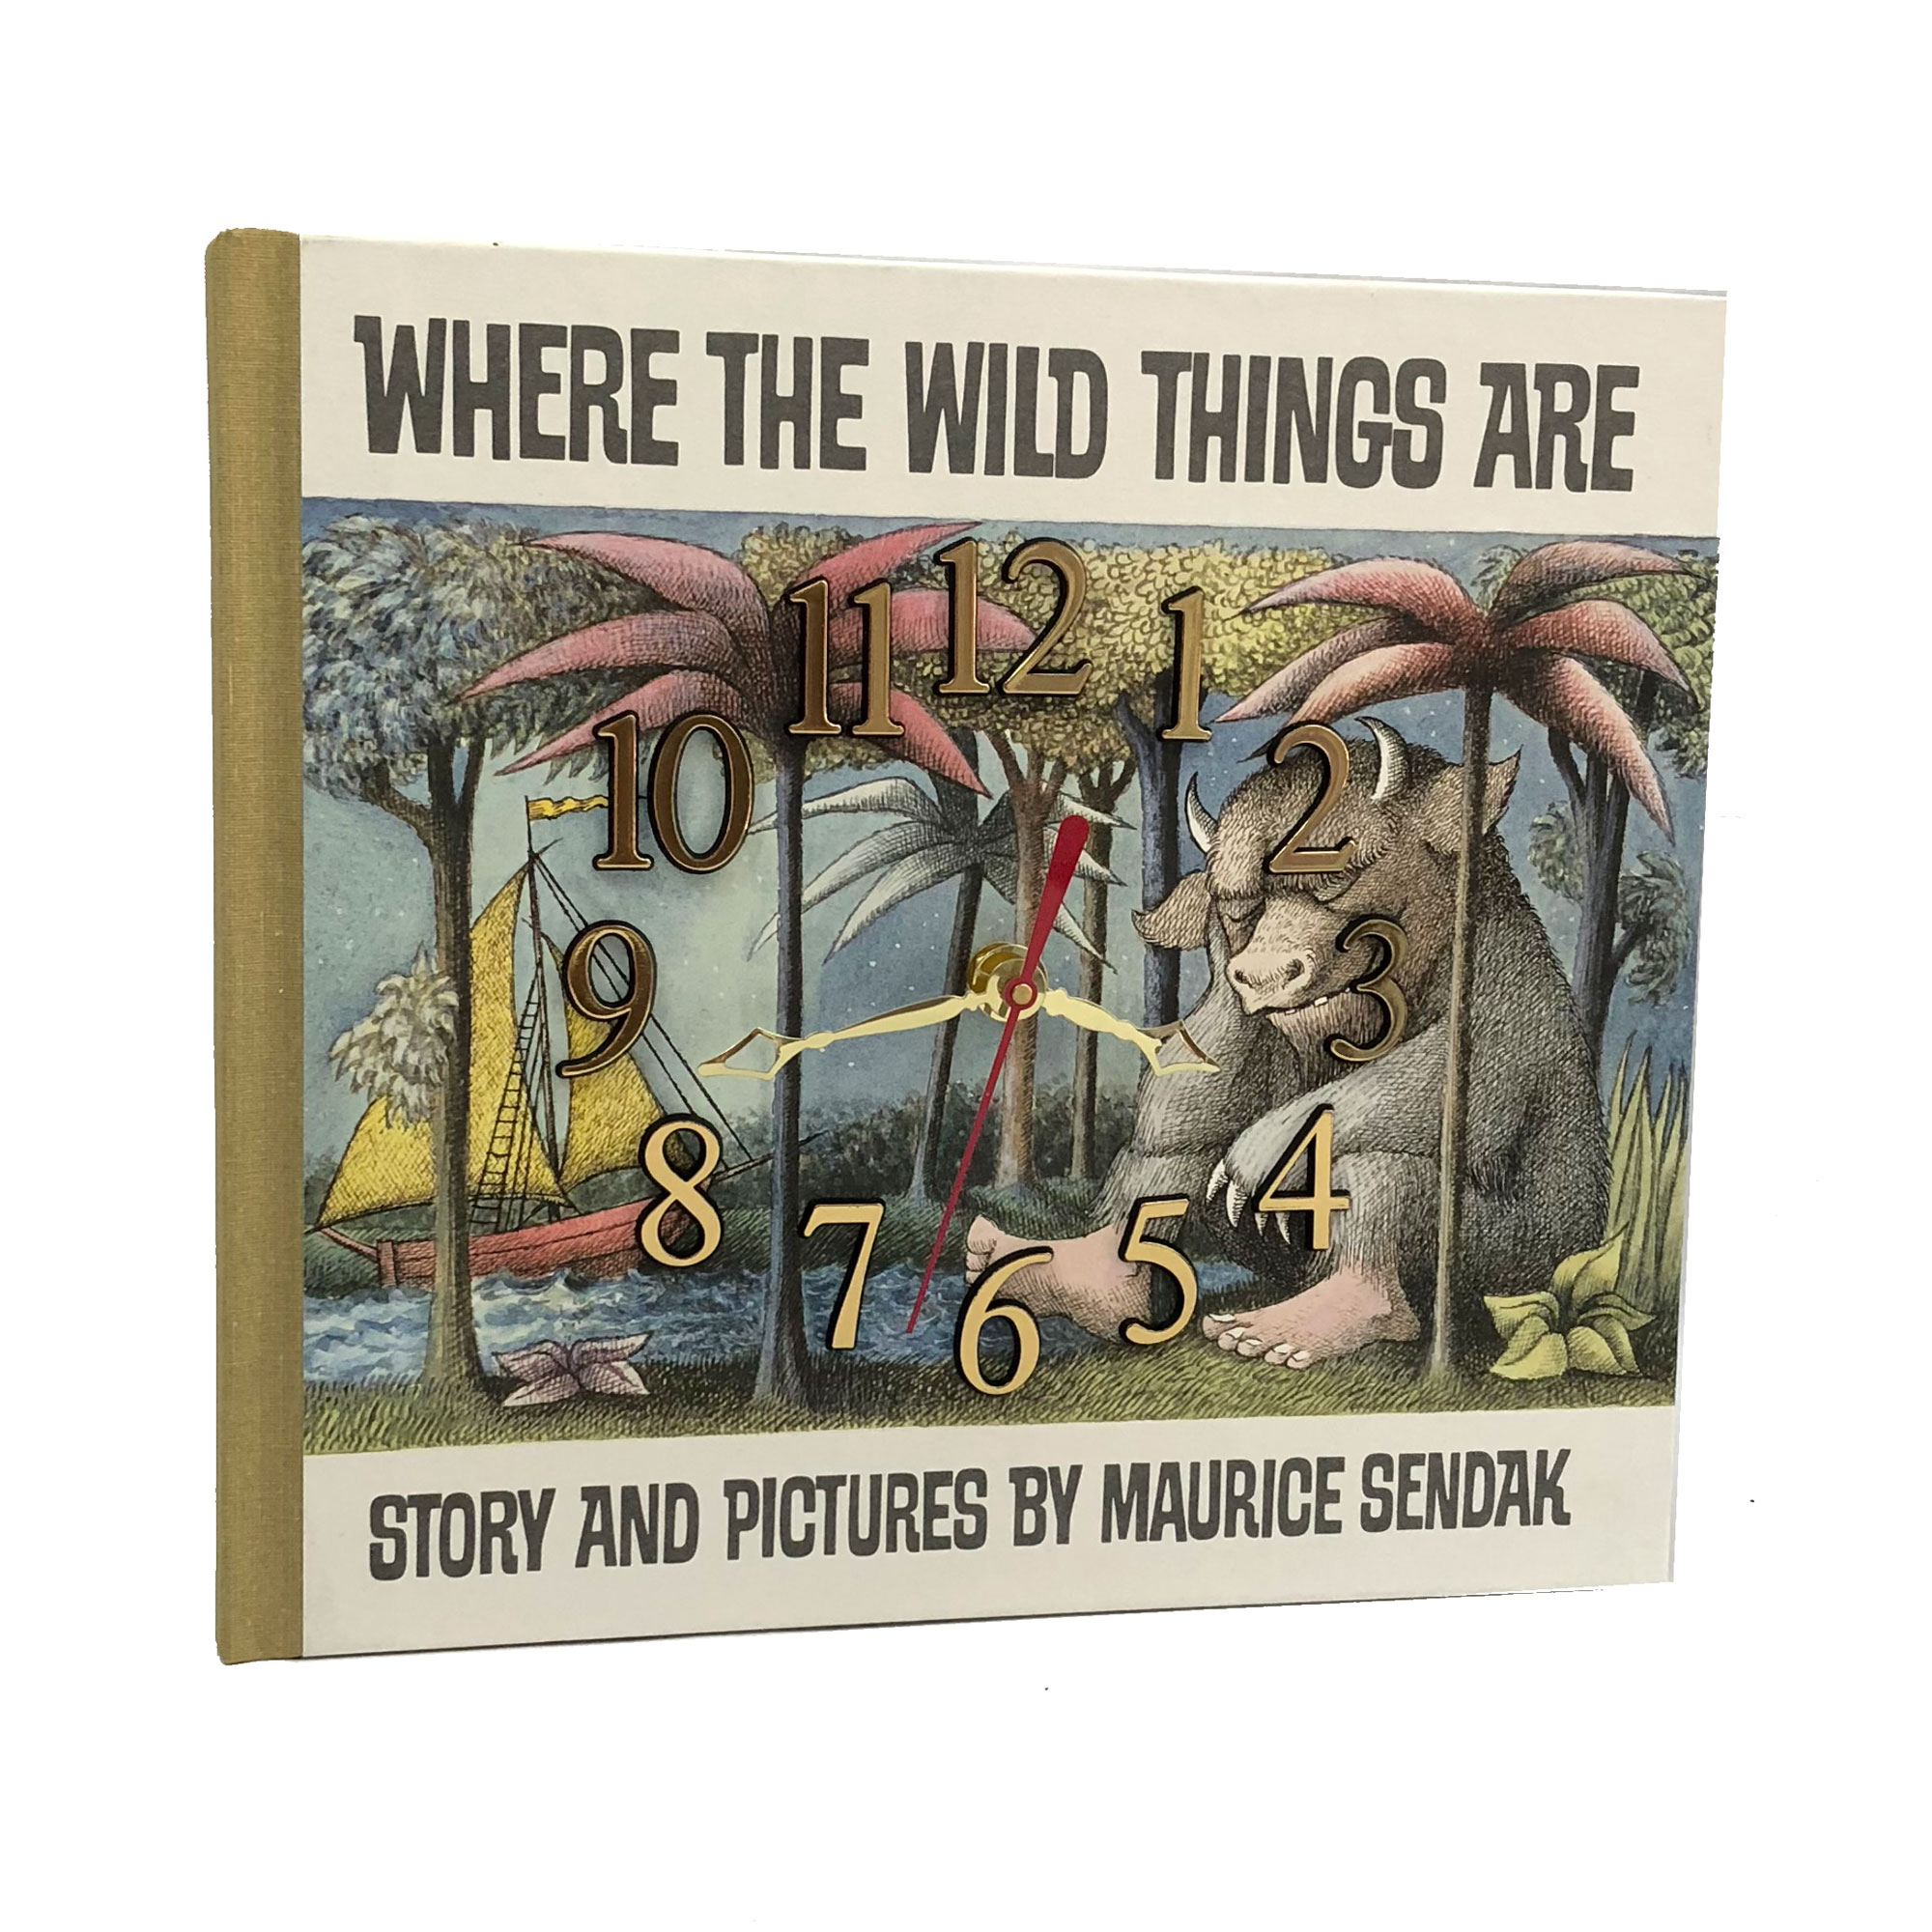 wherethewildthingsare book